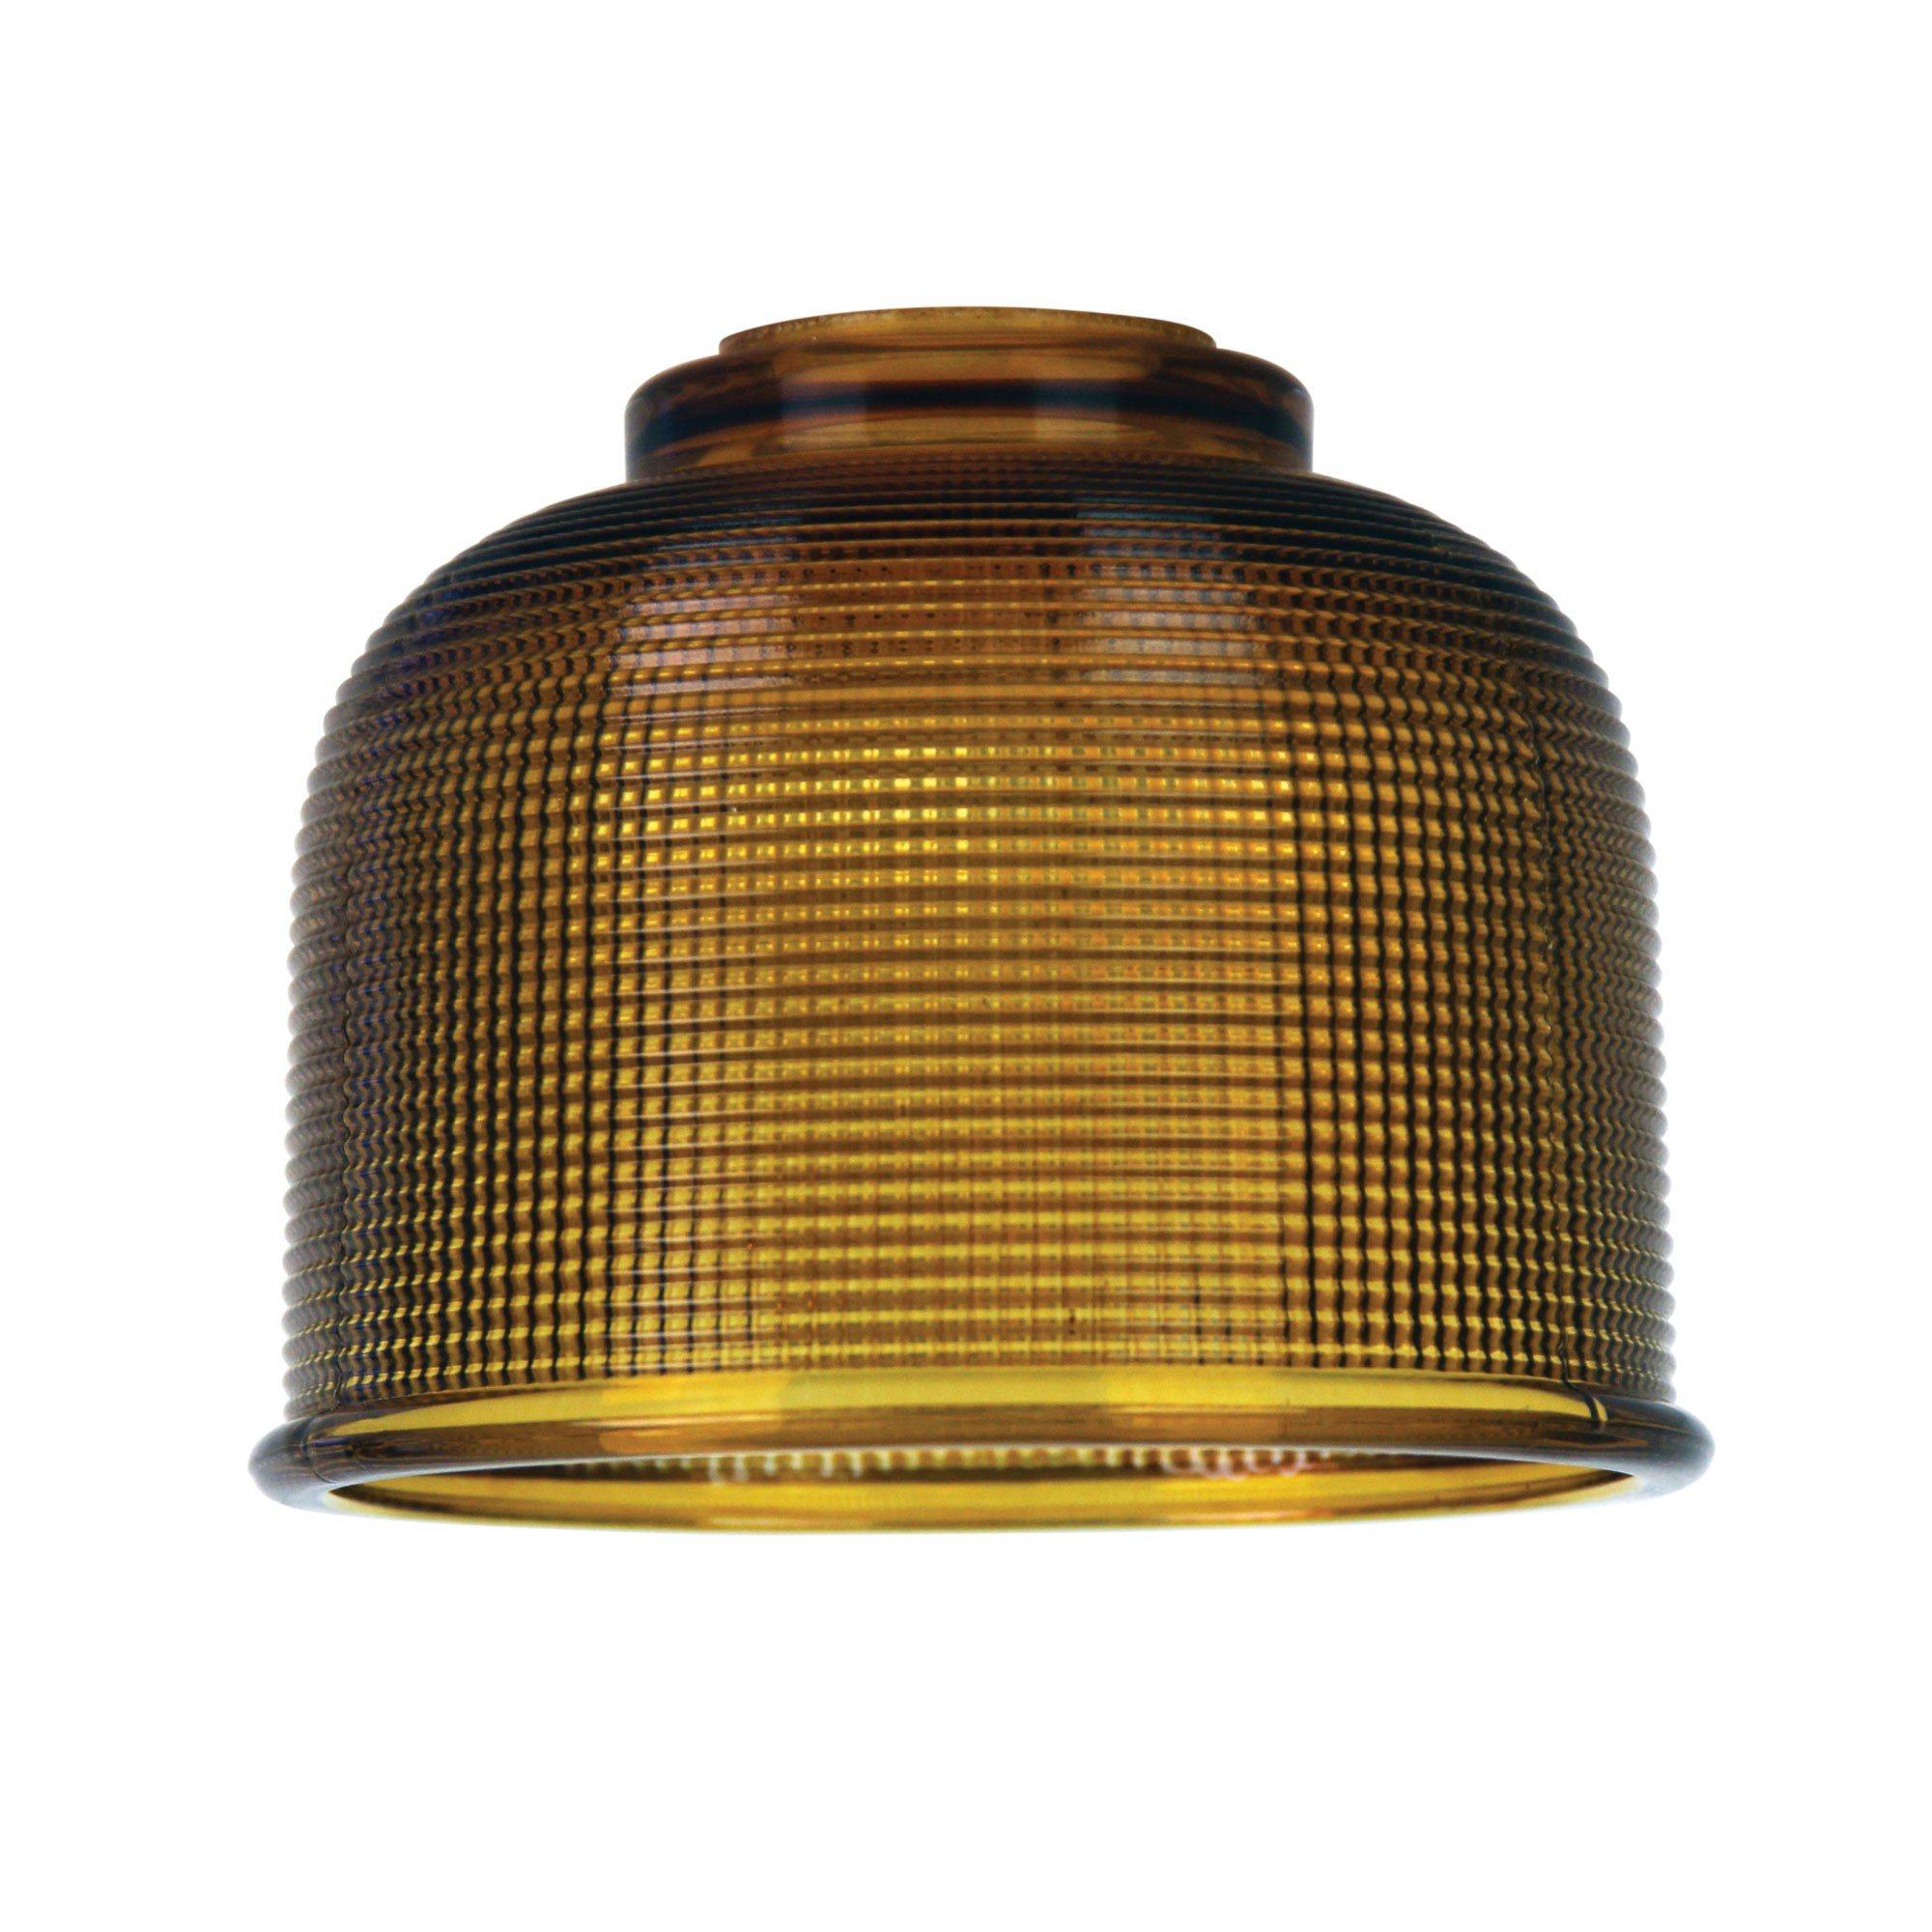 Maison Halophane Glass Pendant Light Shade, 15cm, Amber